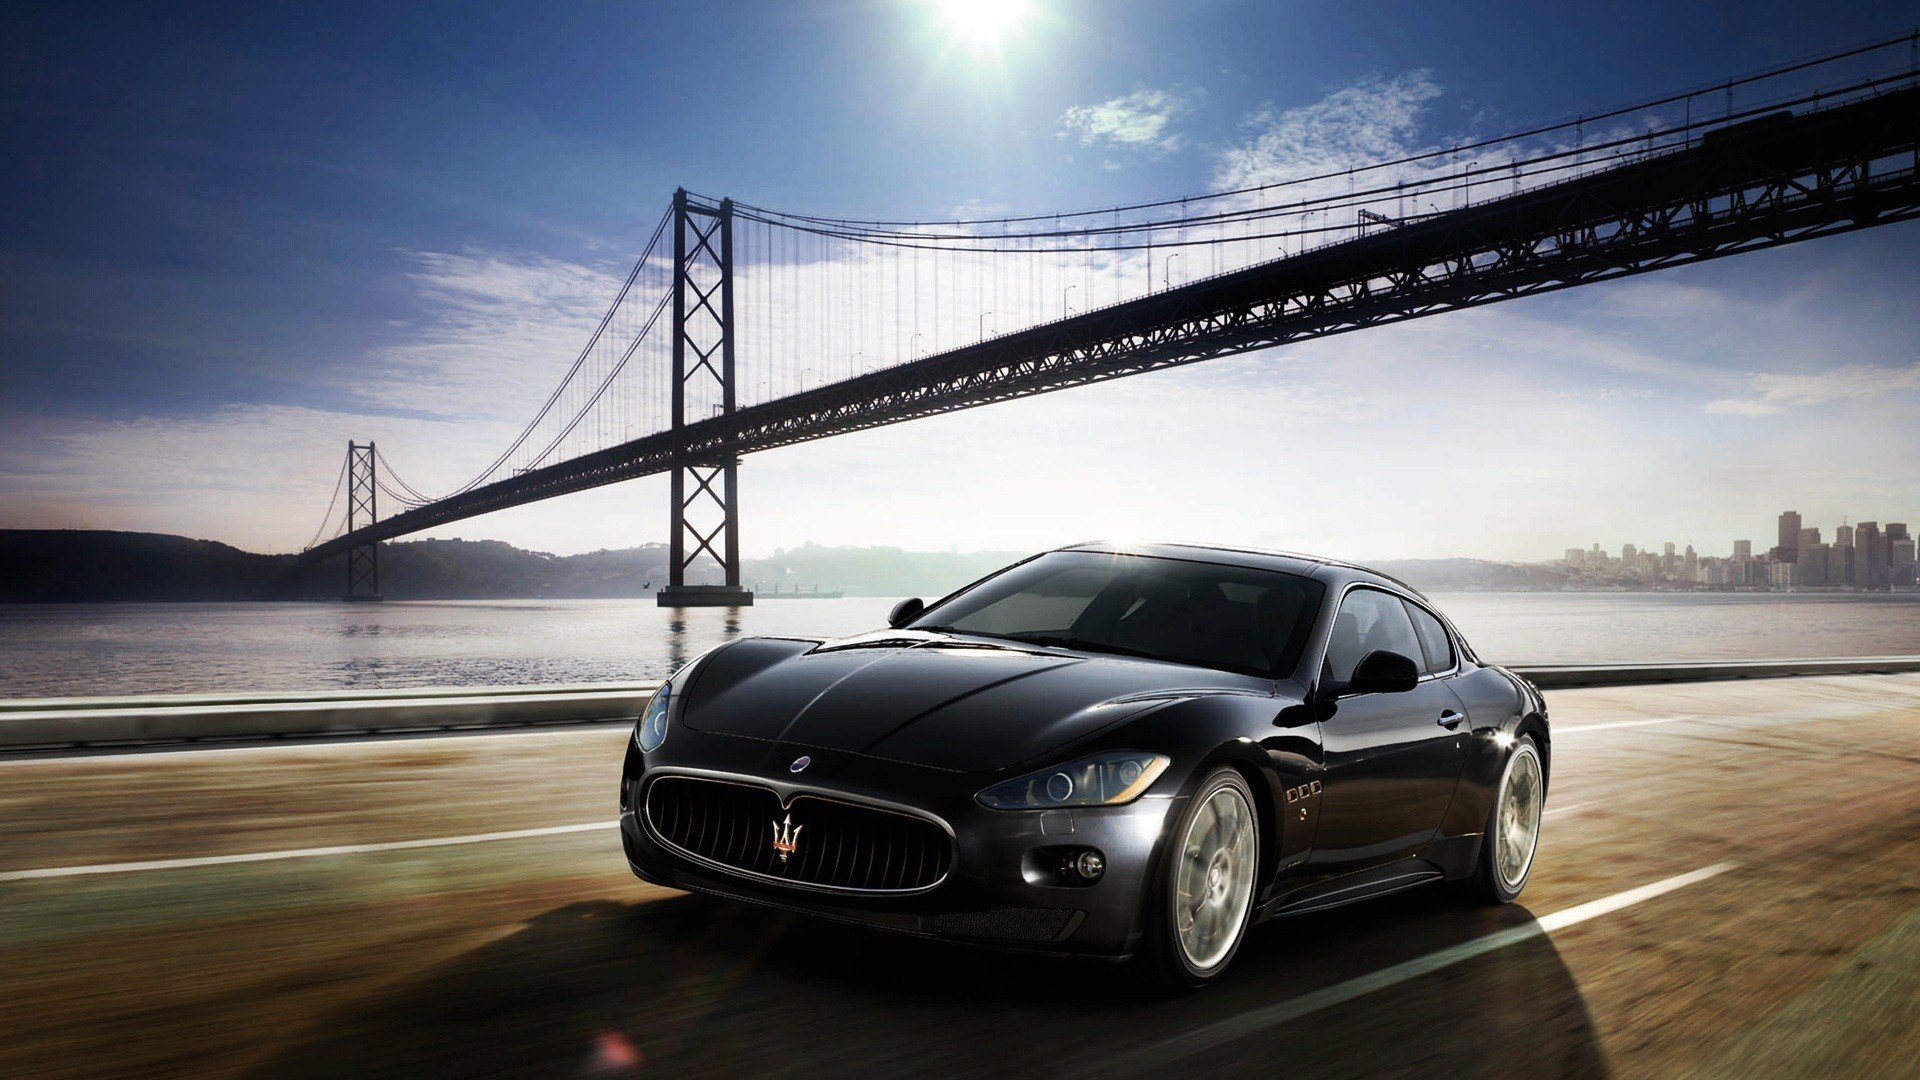 Latest Maserati Granturismo Wallpapers Hd Wallpapers Id 10592 Free Download